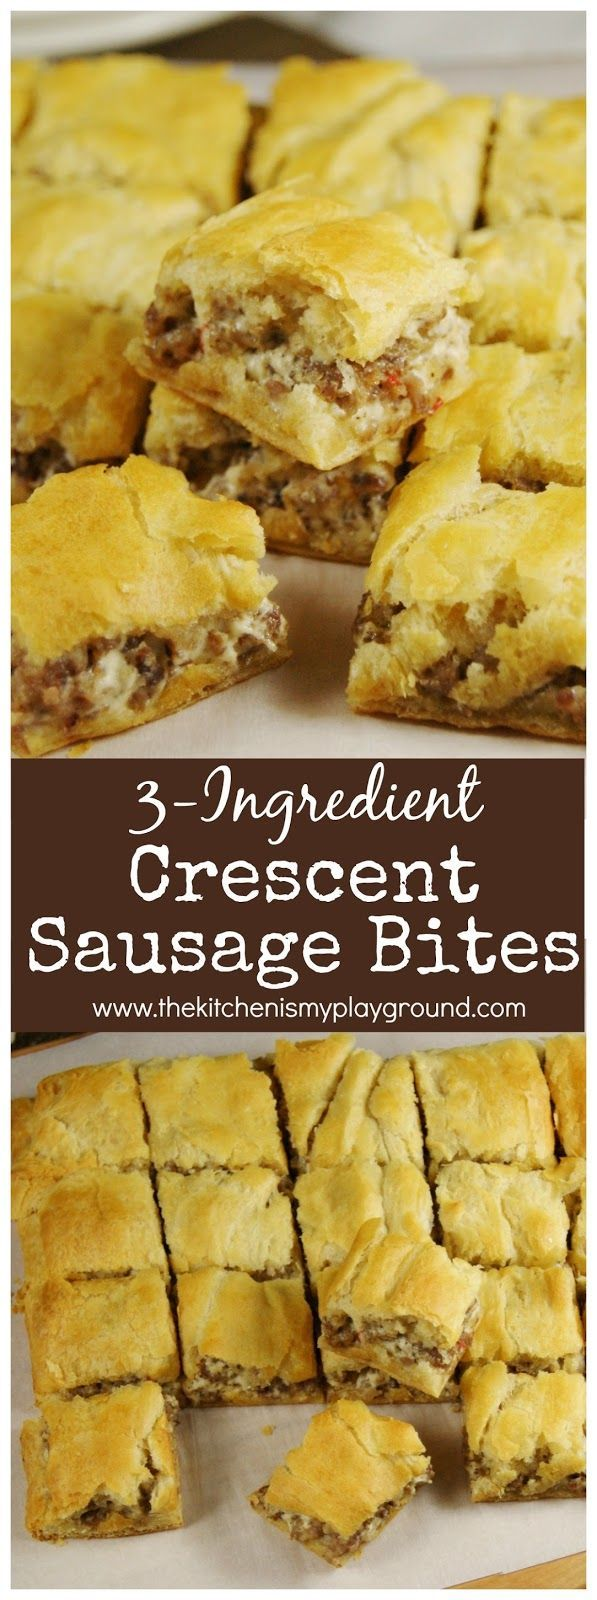 Looking for quick and easy party food?  Three-ingredient Crescent Sausage Bites are super simple and always a party hit!